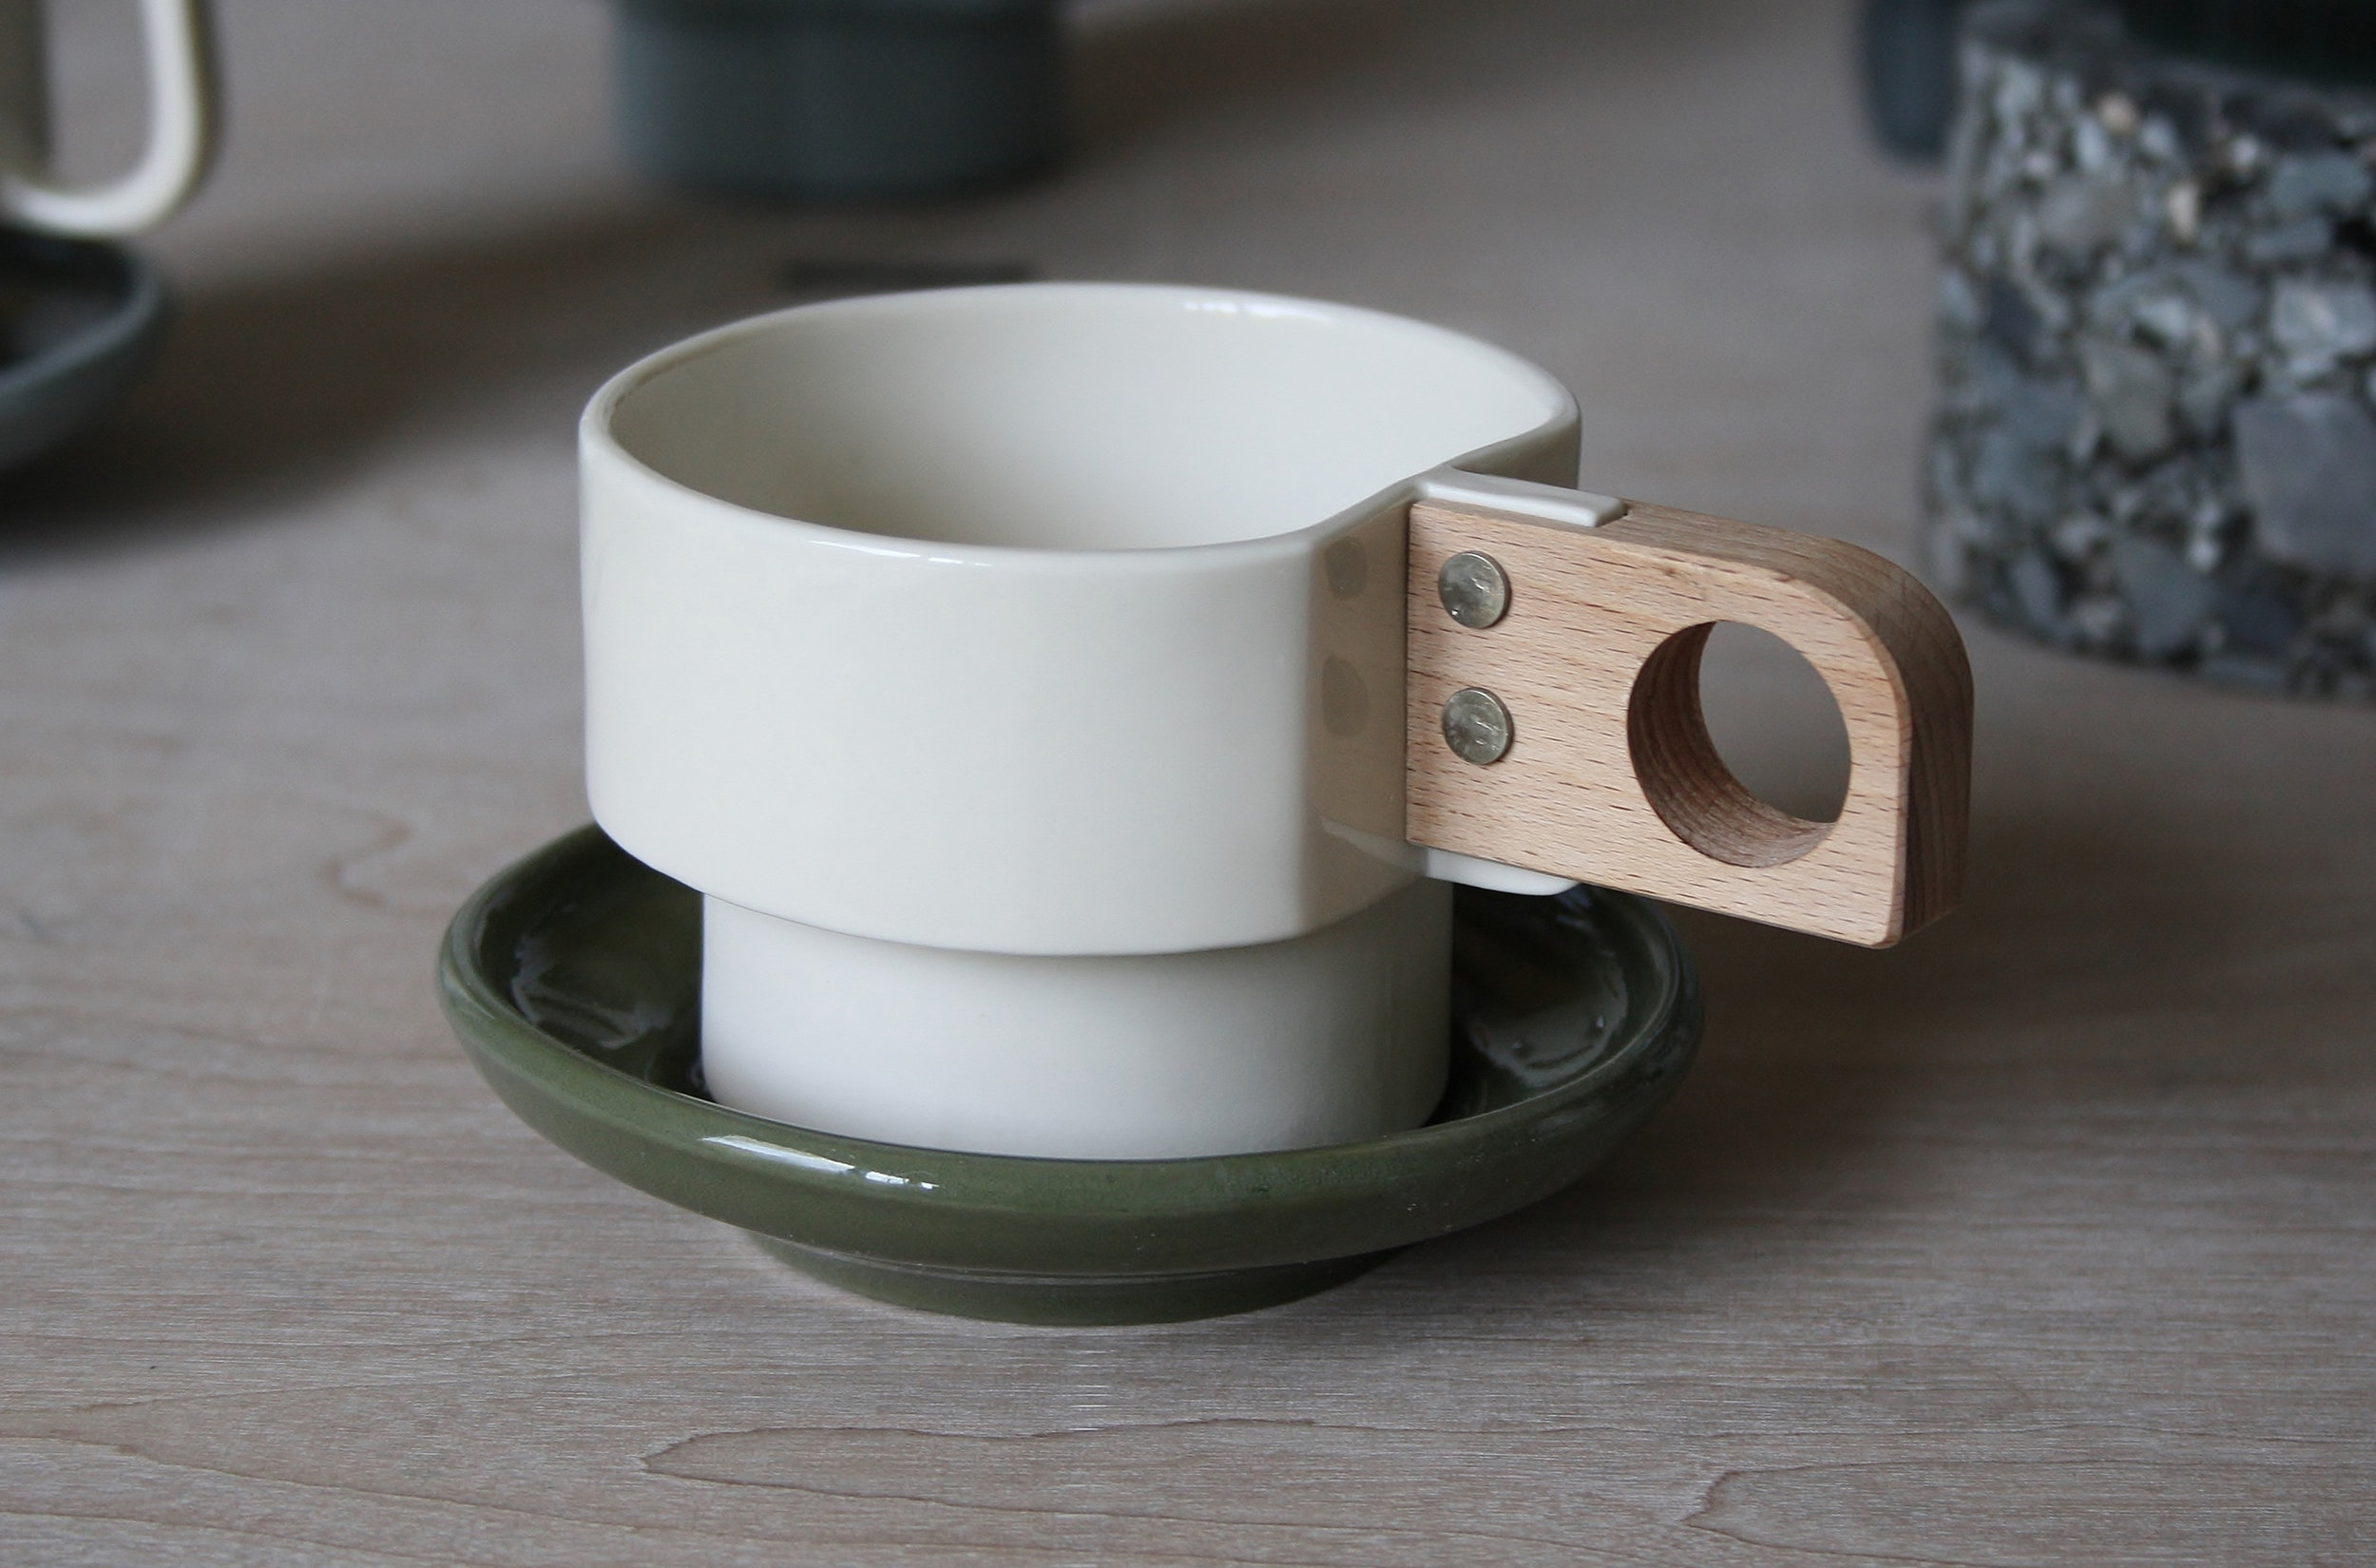 Atro-city Teacup and Moss Green Saucer by Emma Johnson